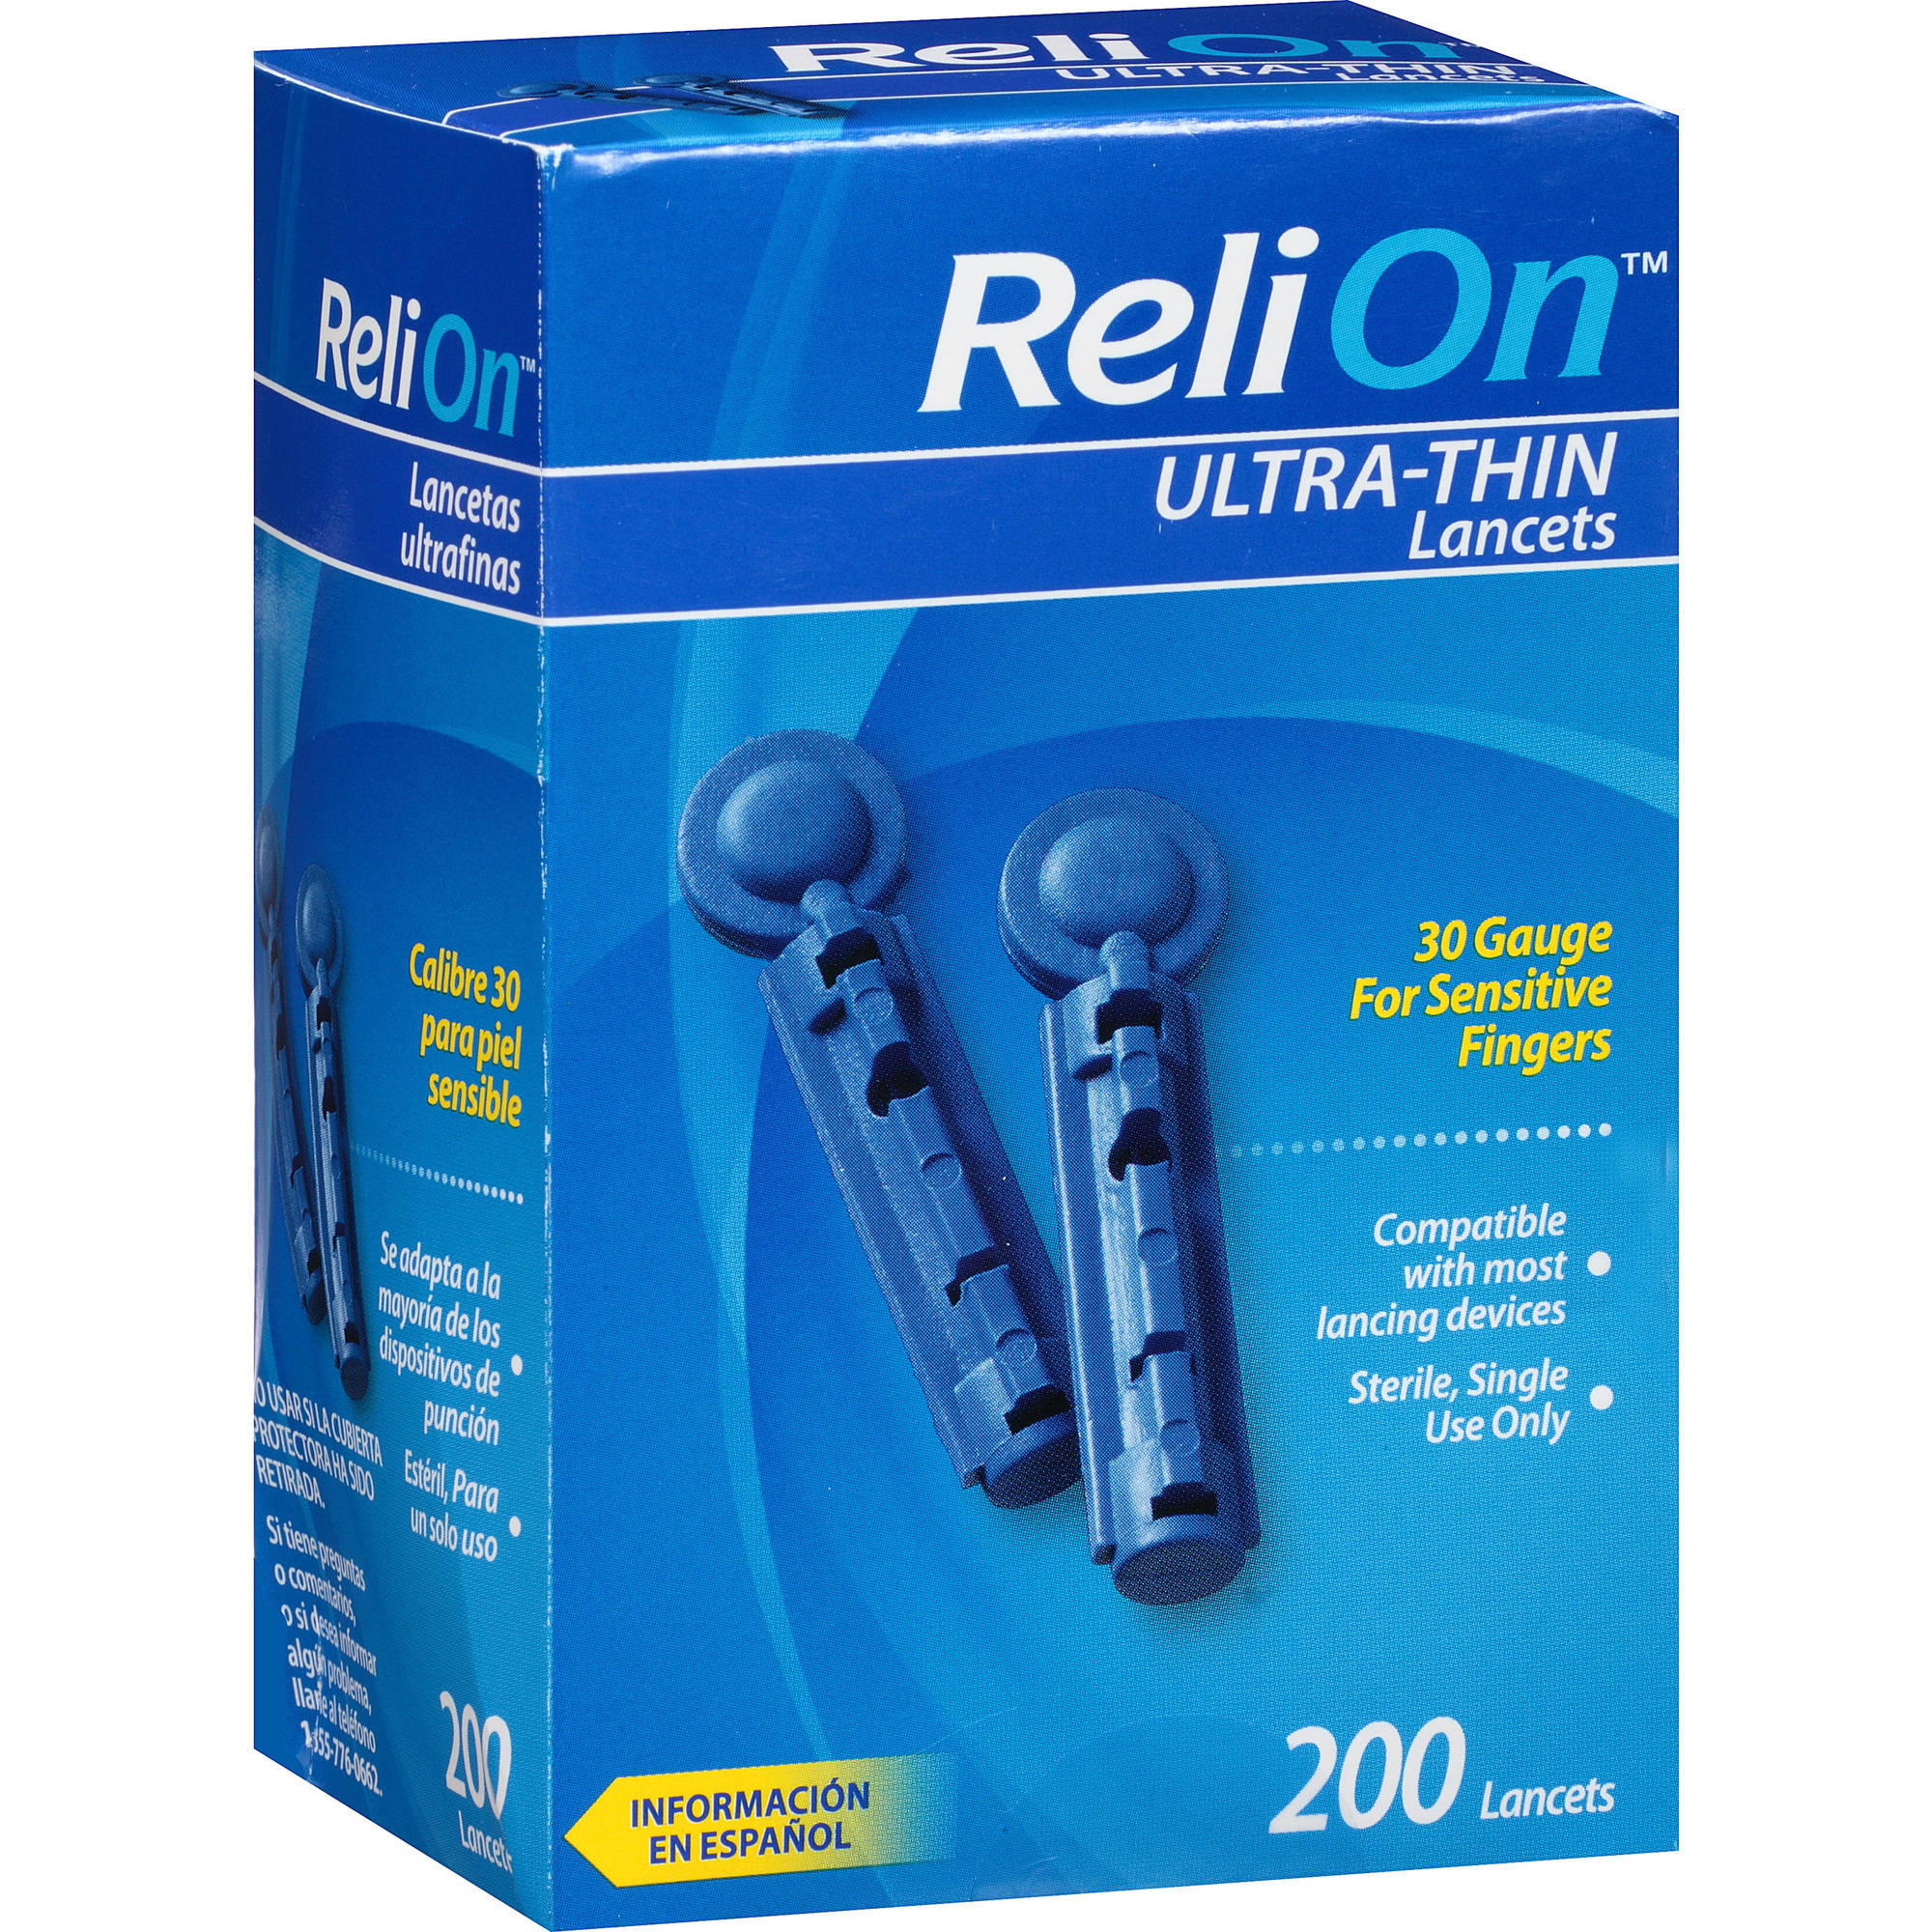 relion thermometer model 144-691 manual